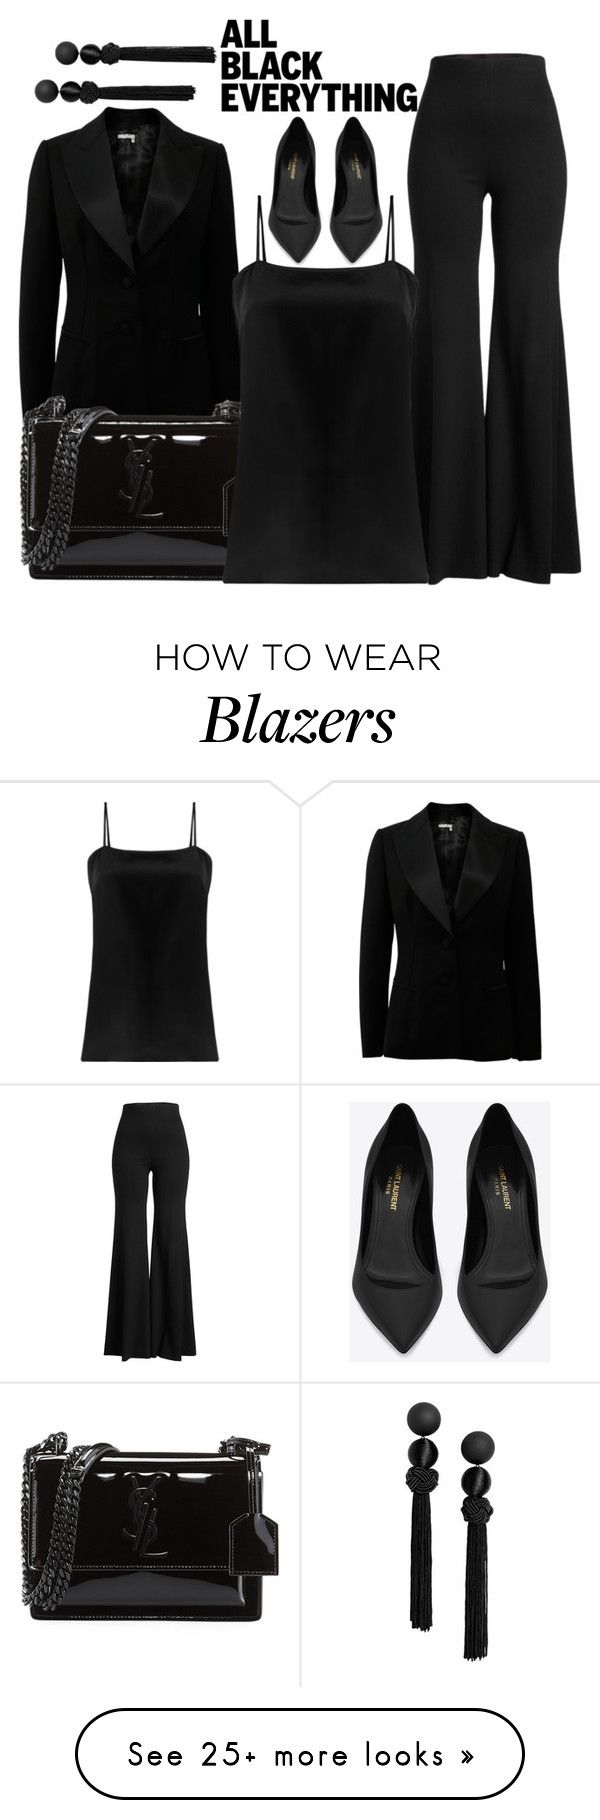 """Black Is Awesome"" by poppyxooo on Polyvore featuring Lanvin, Rosetta Getty, Yves Saint Laurent, Racil and allblackoutfit"